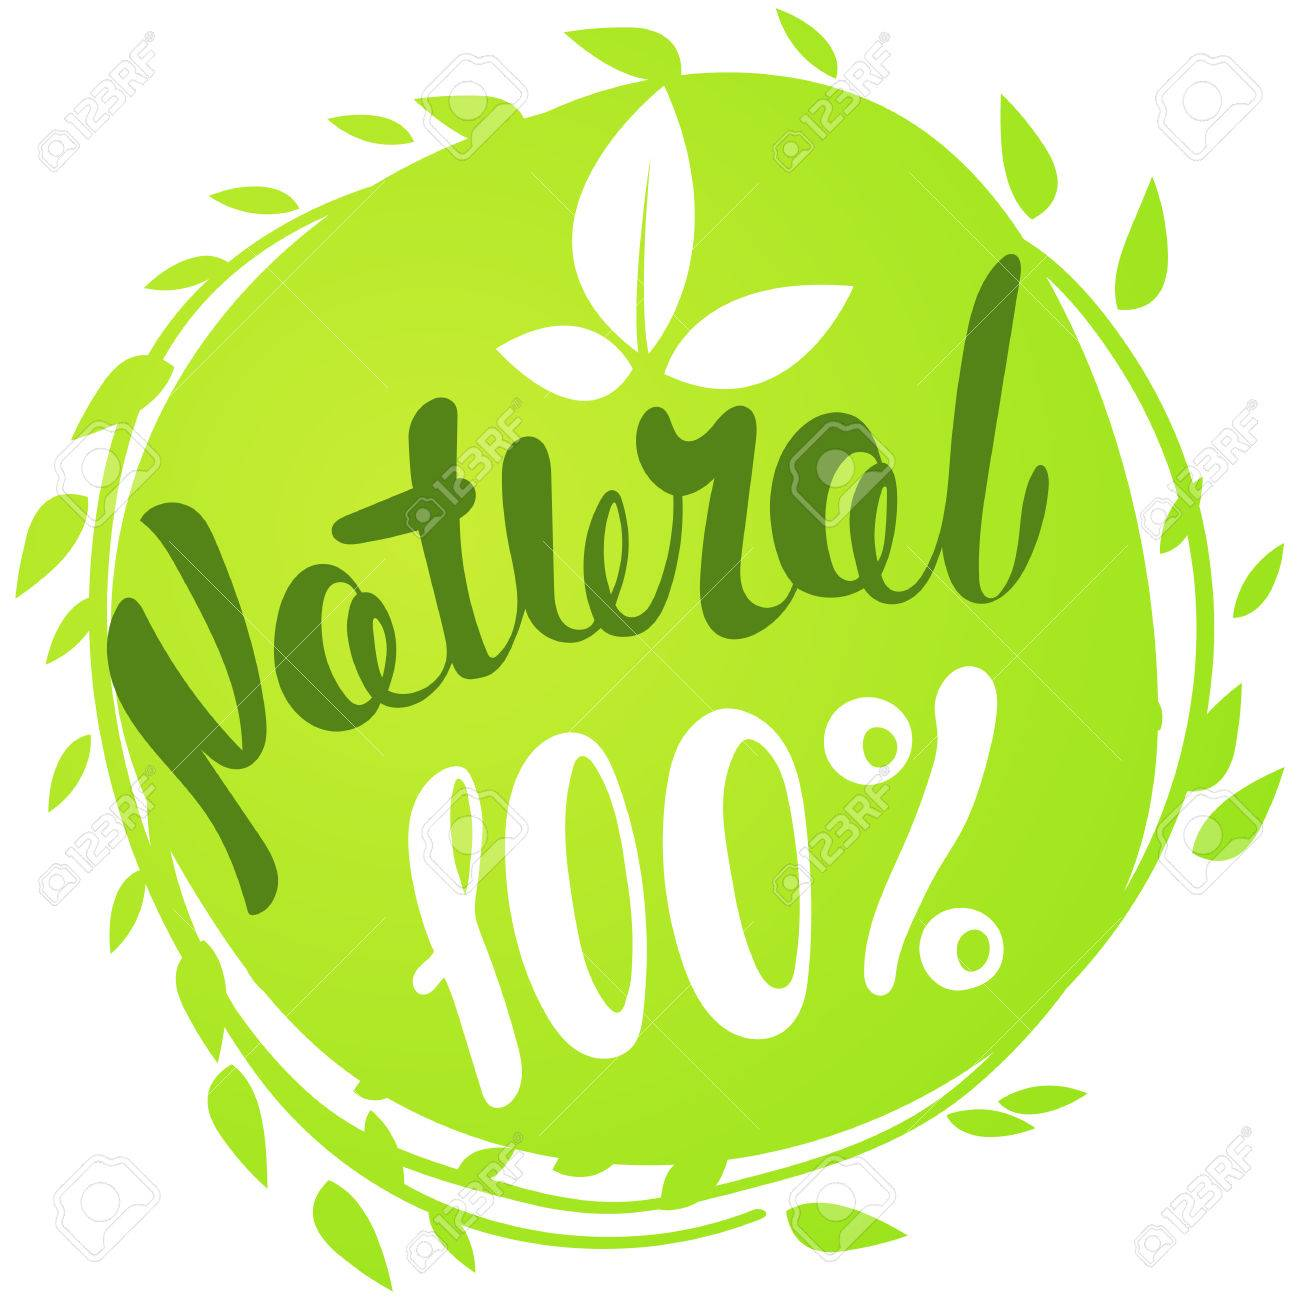 100 natural with leaves natural product organic healthy food